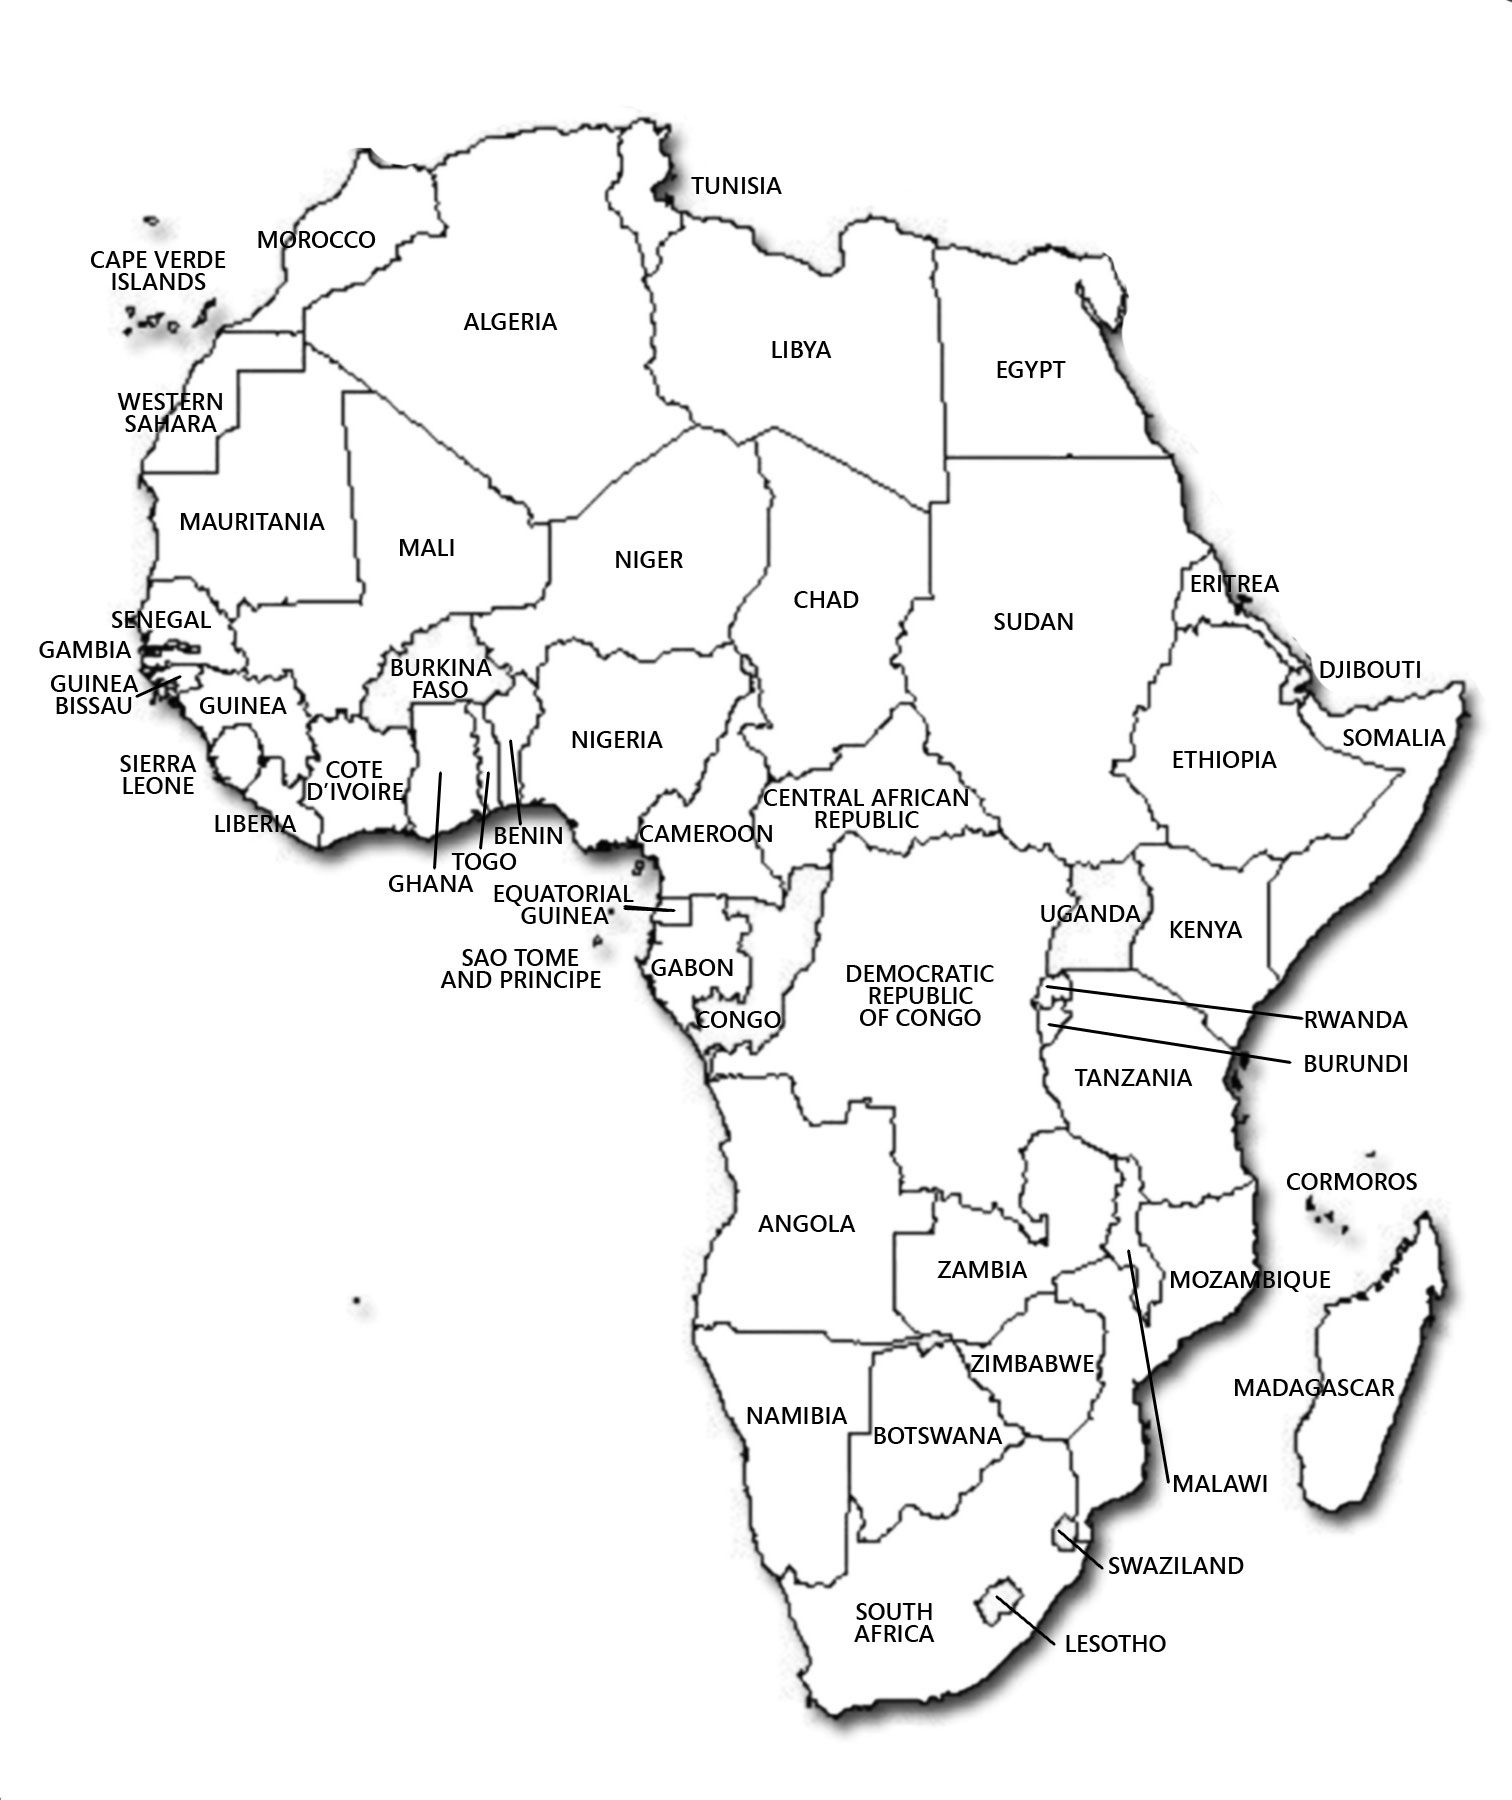 Large Detailed Contour Political Map Of Africa